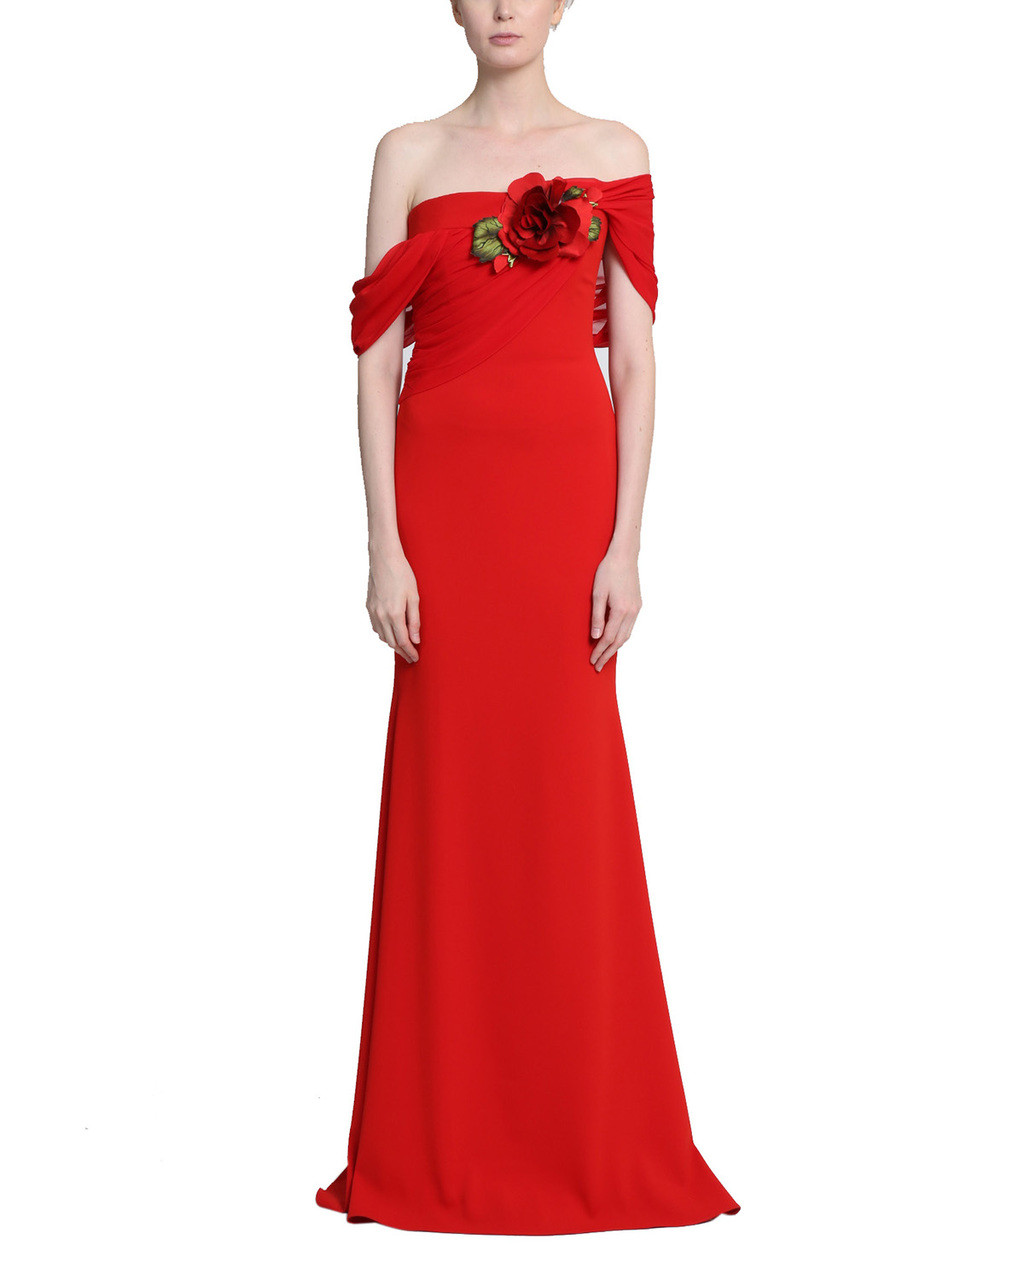 06cabccb728 Off the Shoulder Chiffon Gown by Badgley Mischka